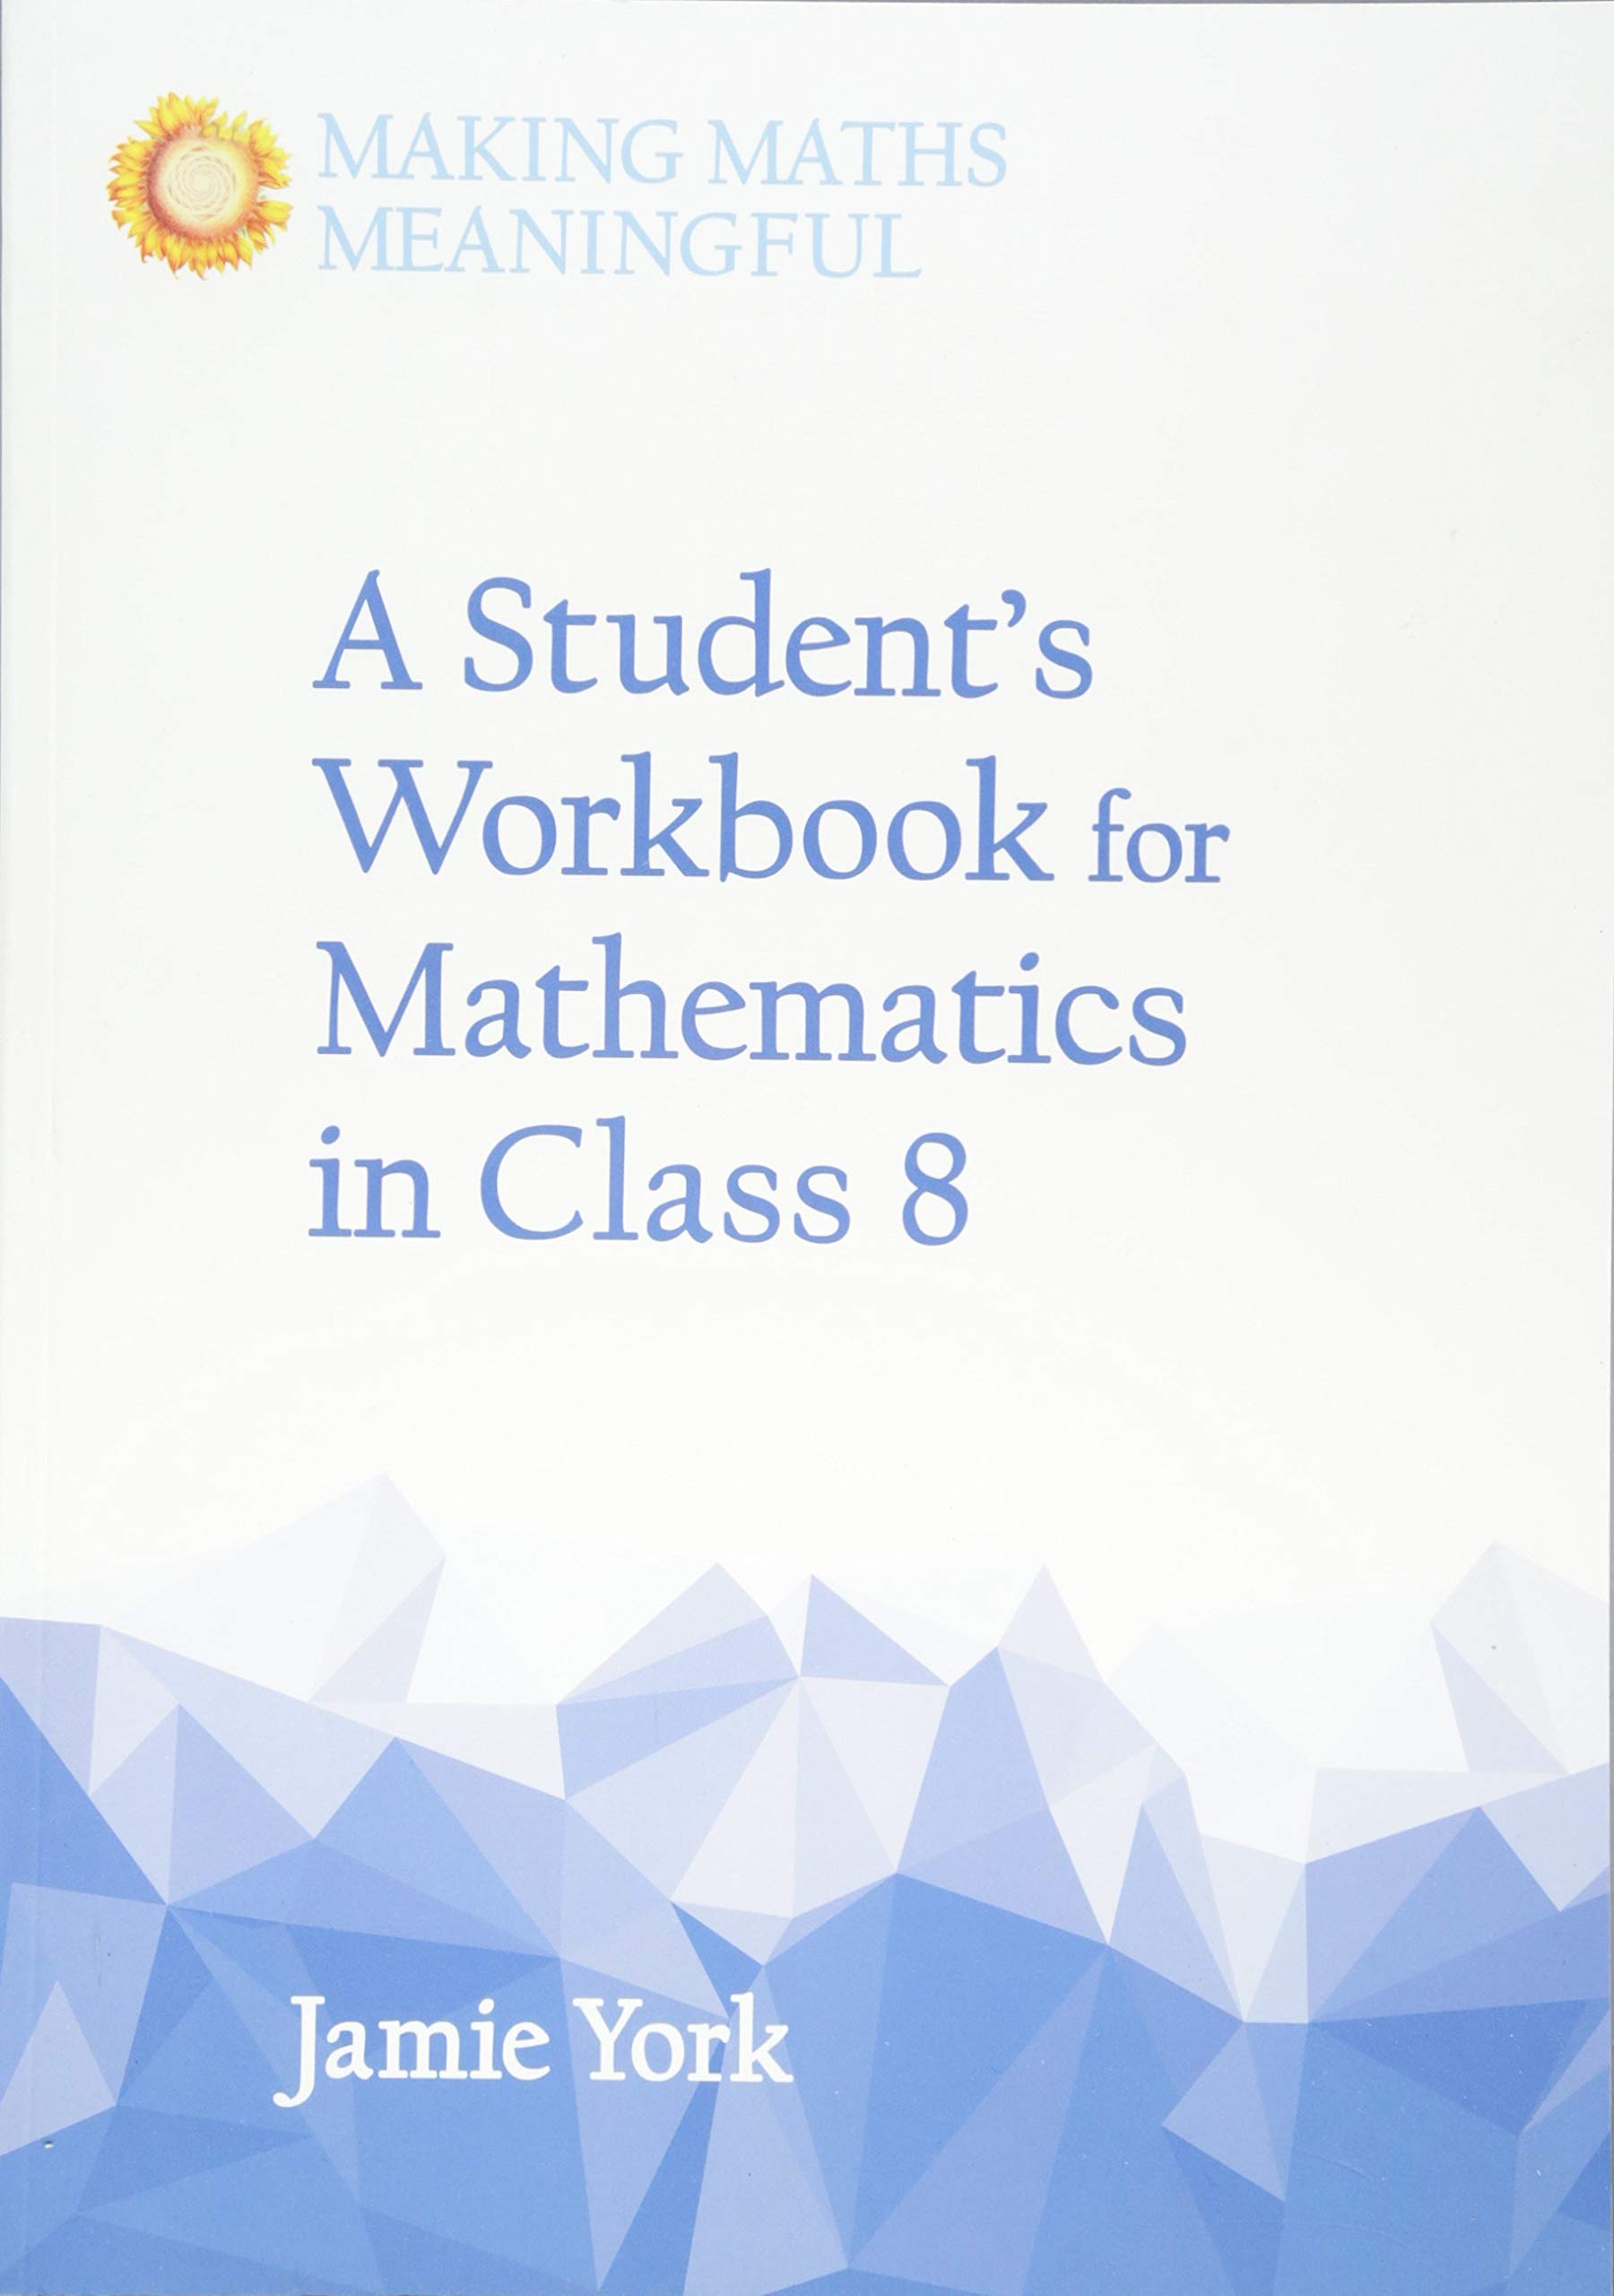 A Student's Workbook for Mathematics in Class 8 (Making Maths Meaningful) pdf